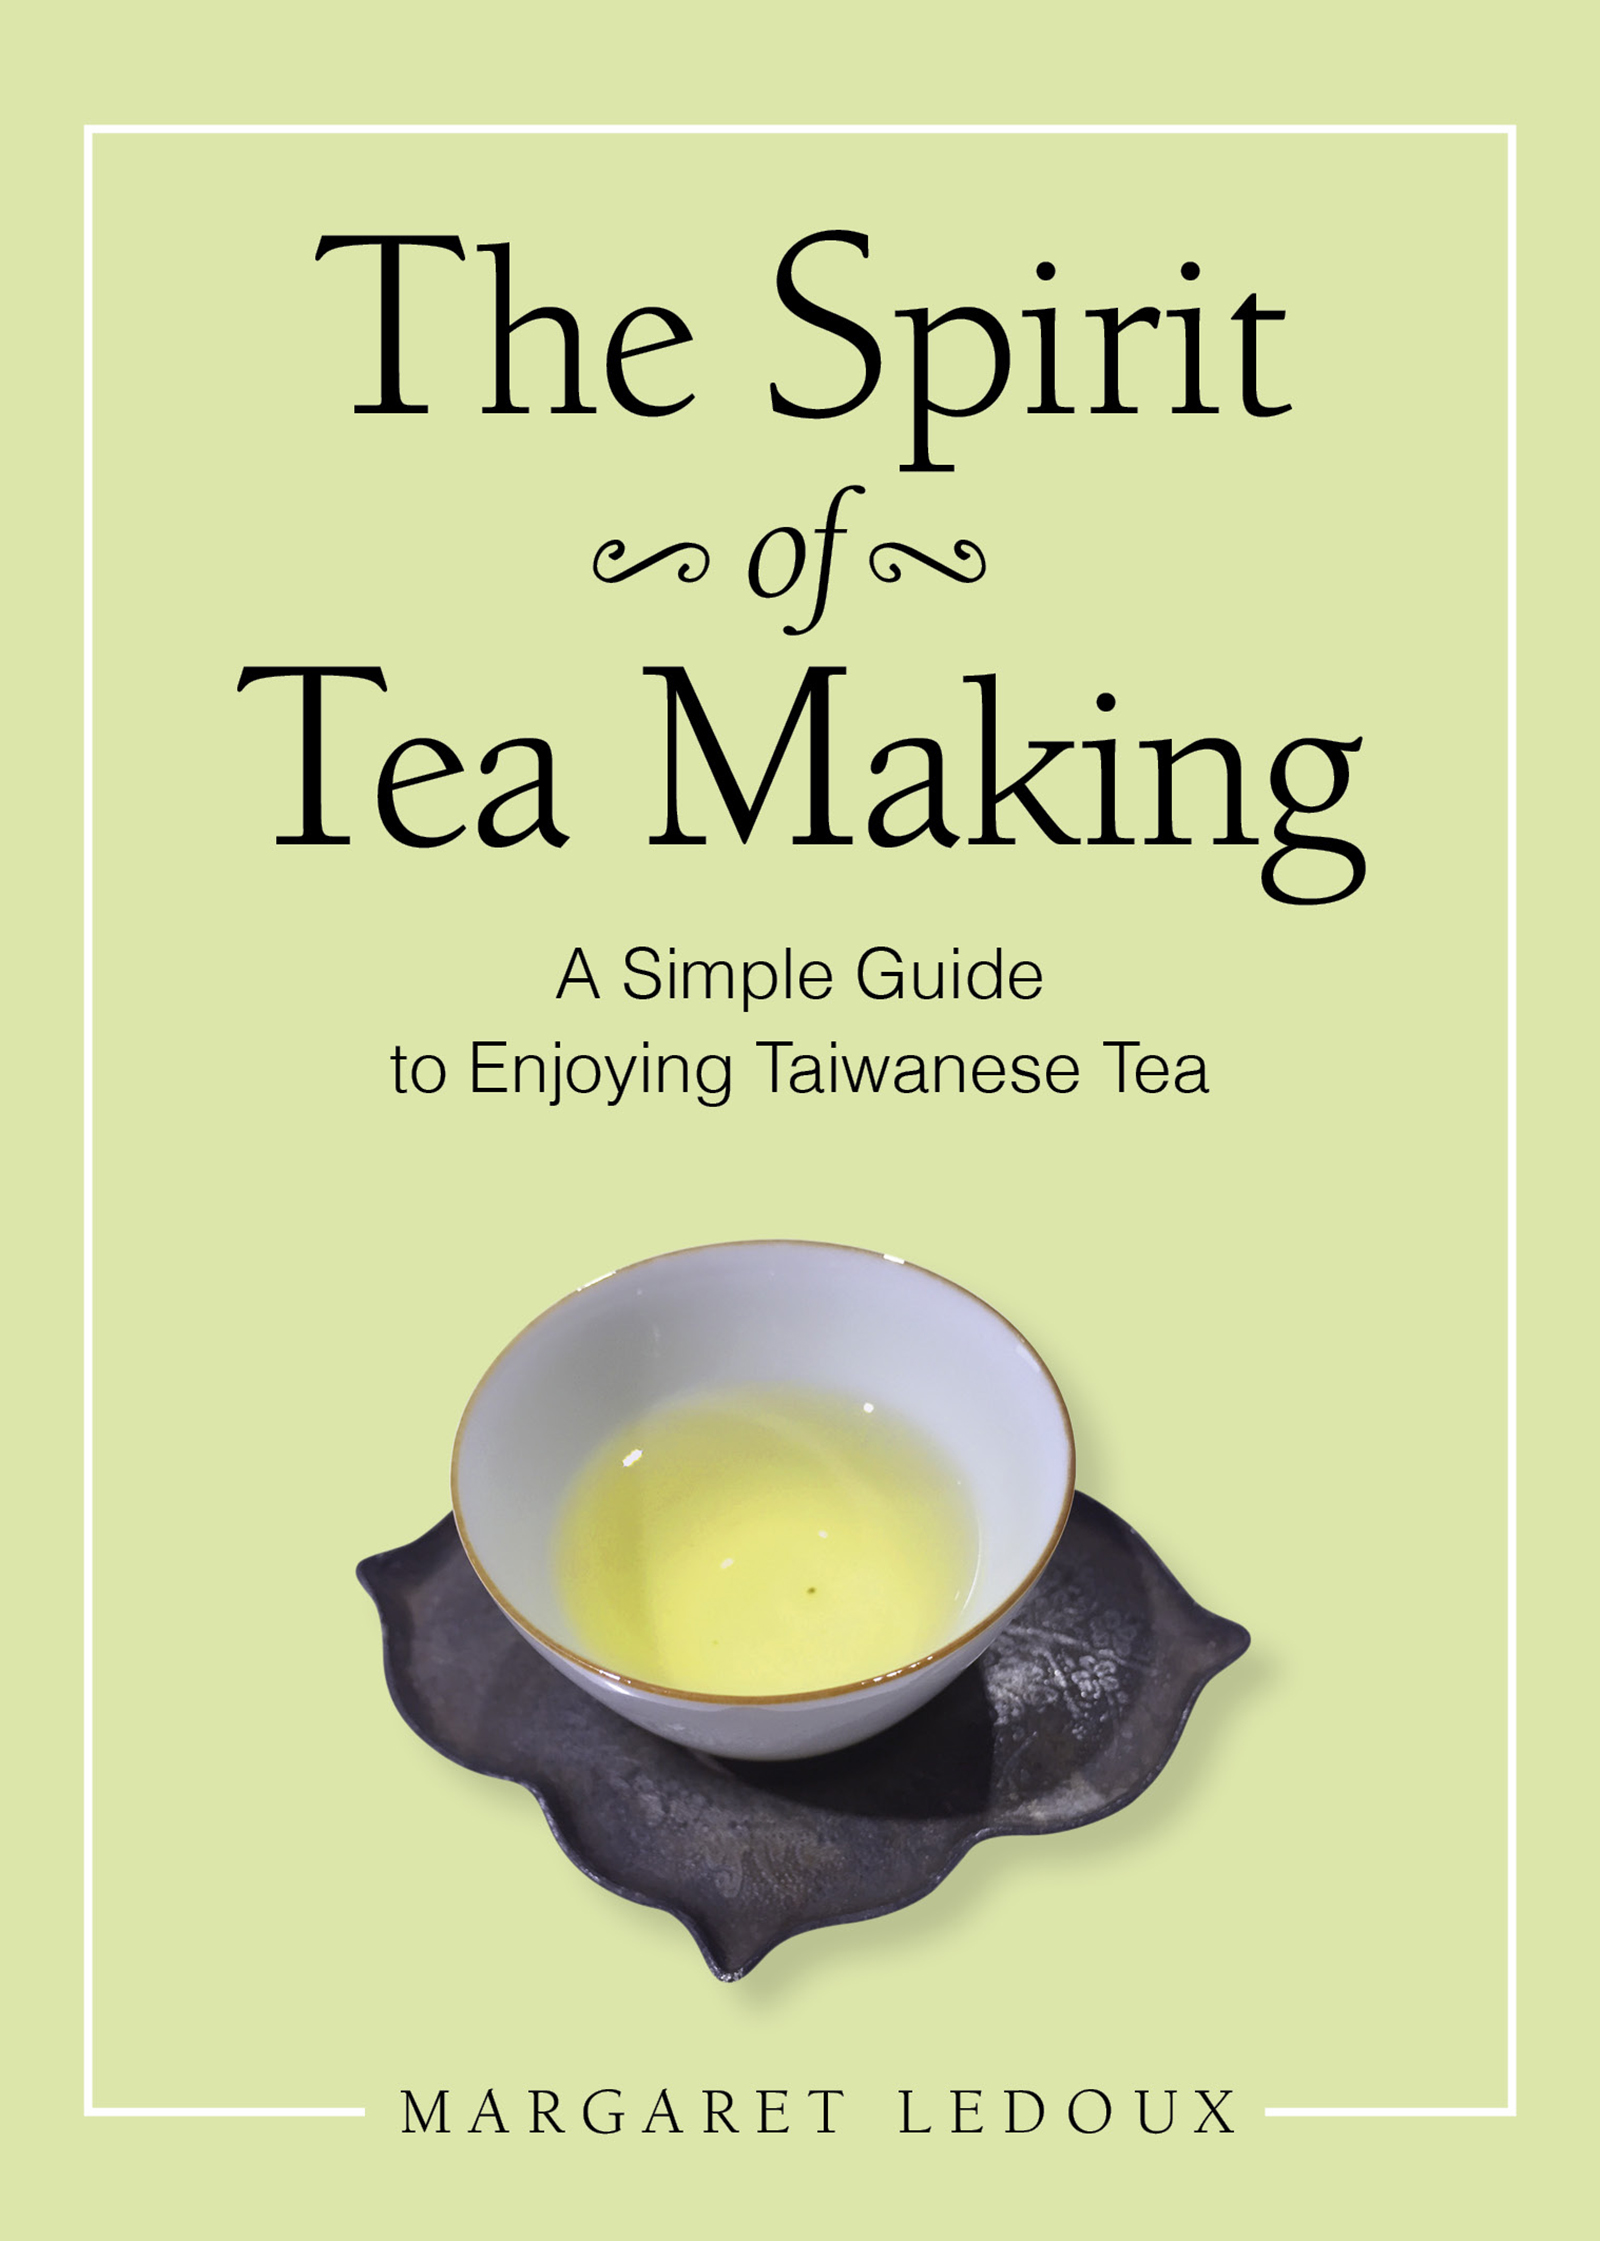 The Spirit of Tea Making, A Simple Guide to Enjoying Taiwanese Tea